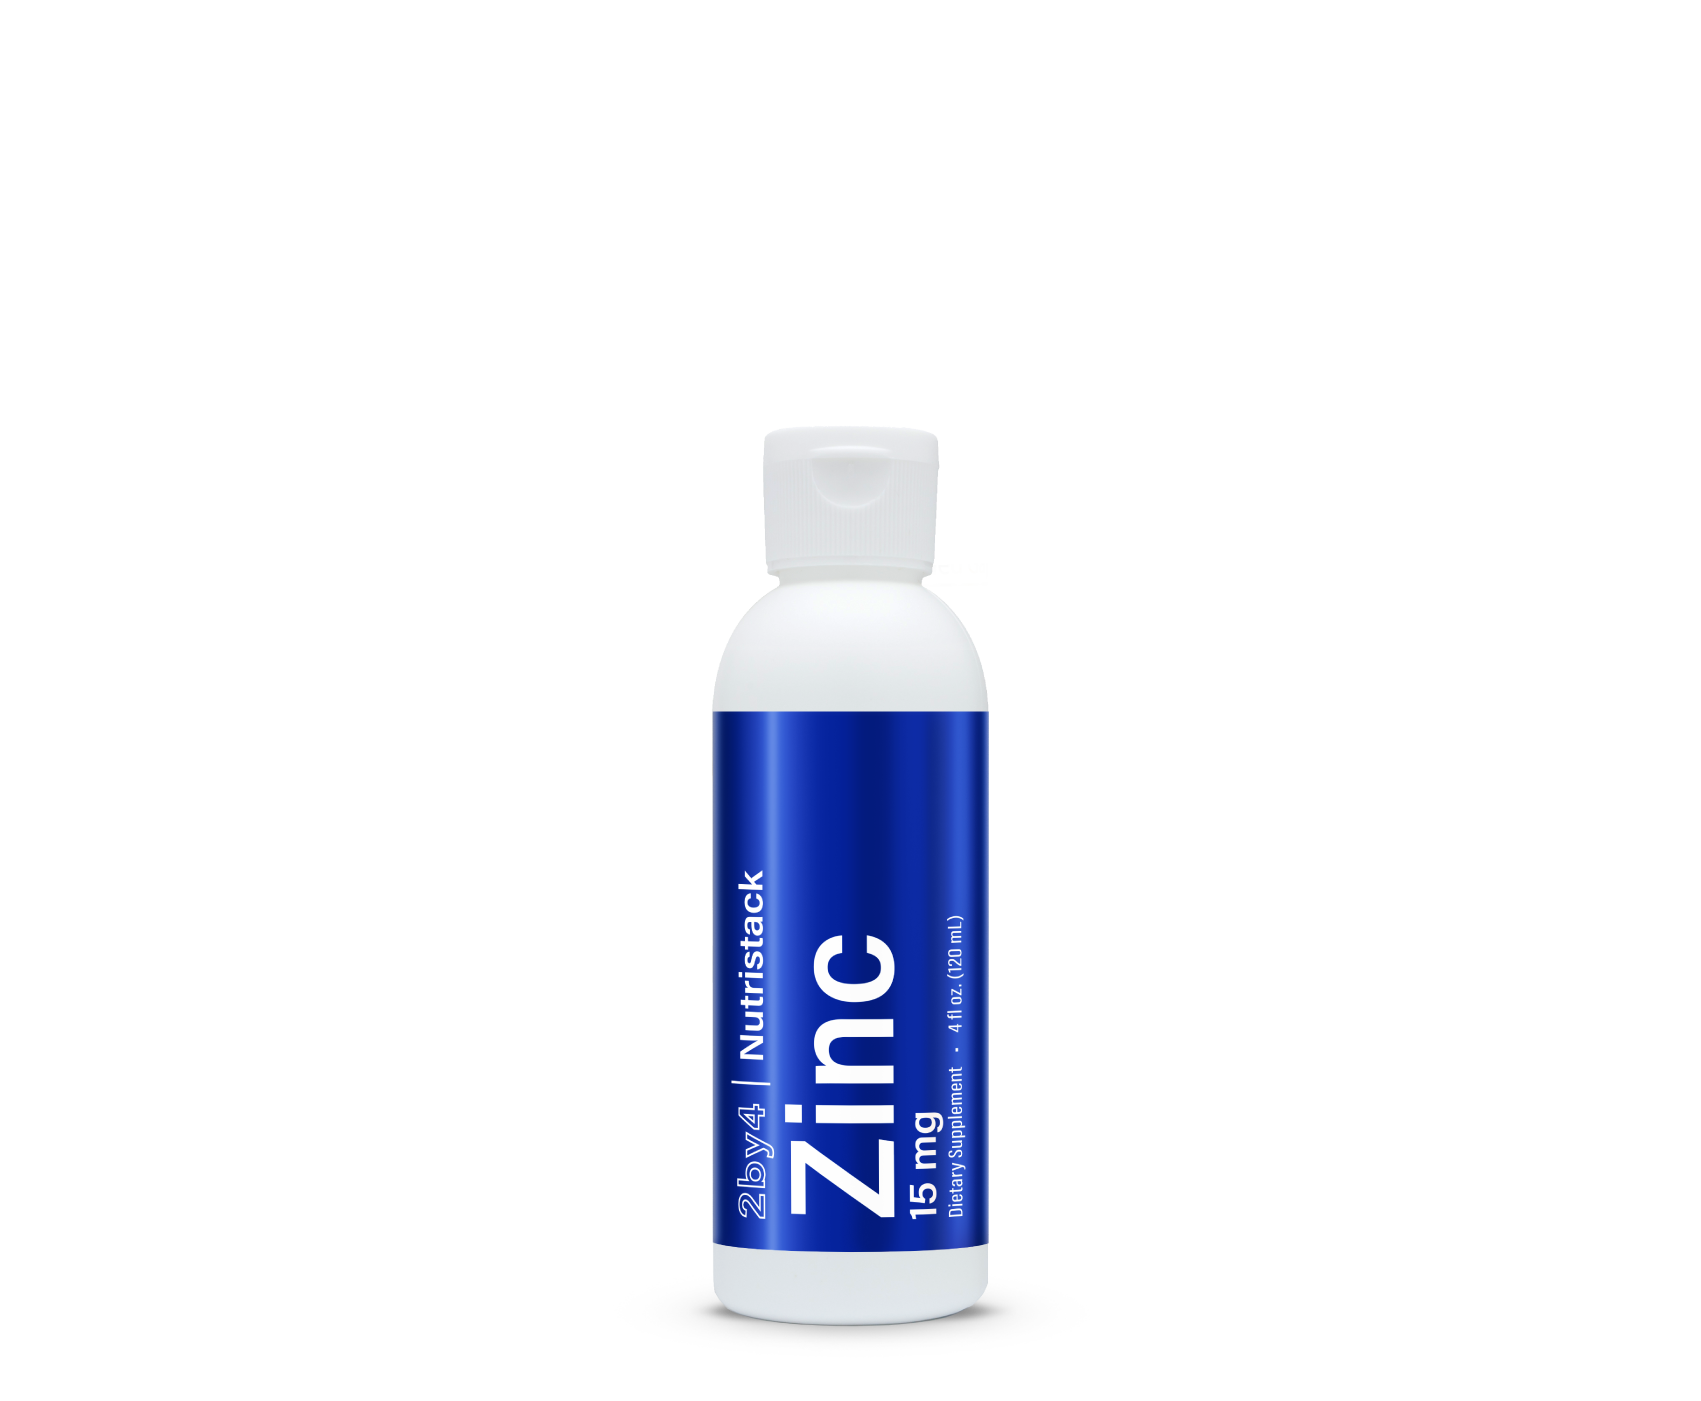 2by4 Liposomal Zinc - with Nutristack Technology